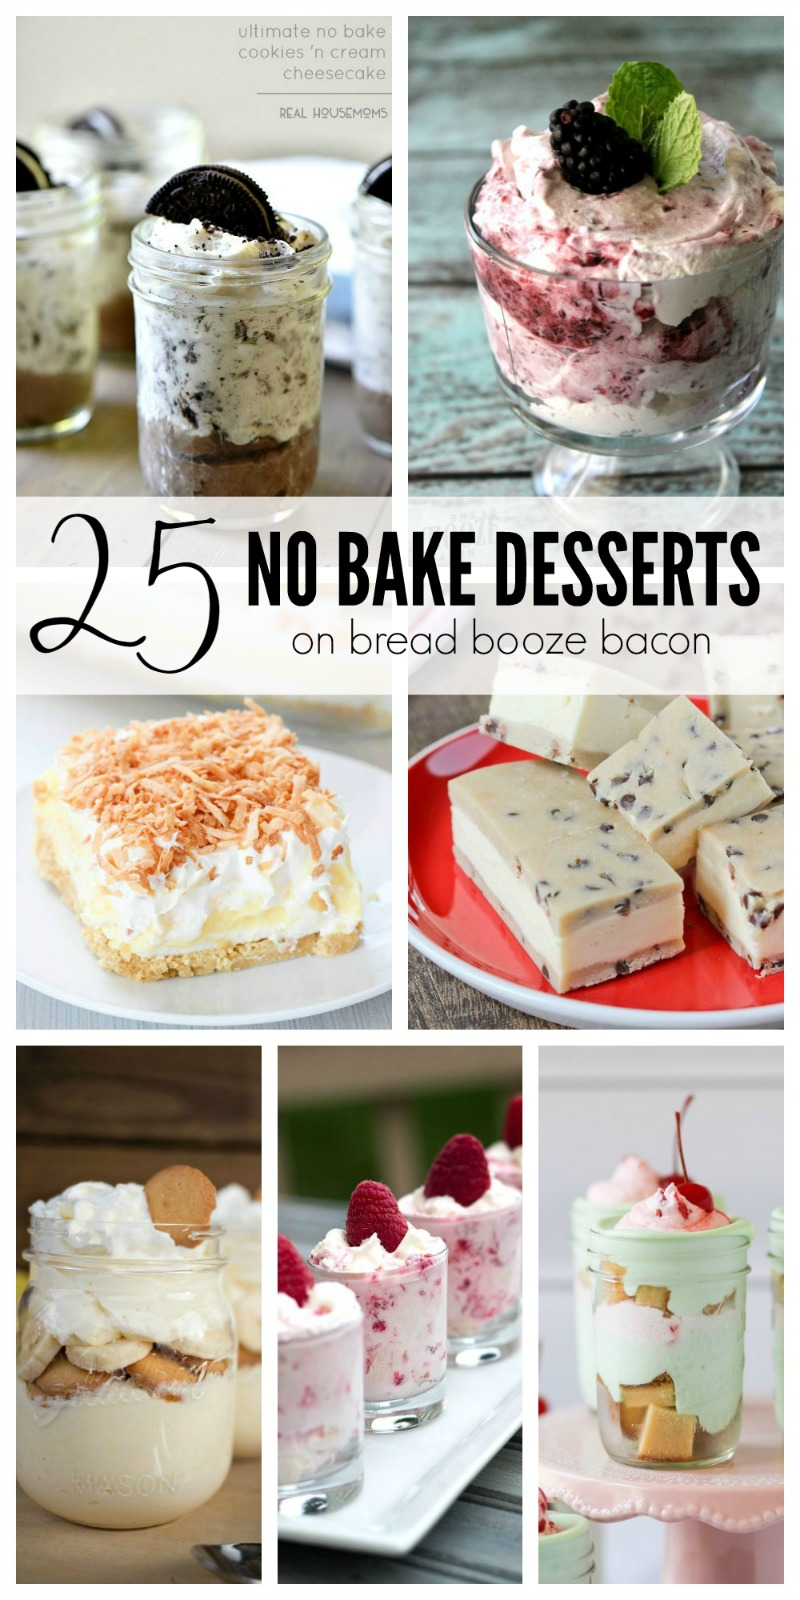 I love desserts of all shapes, types & flavors, but during the summer it gets WAY too hot to turn on the oven unless I absolutely have to.  Yet fear not!  We've put together 25 No Bake Desserts to beat the heat and satisfy your sweet tooth!